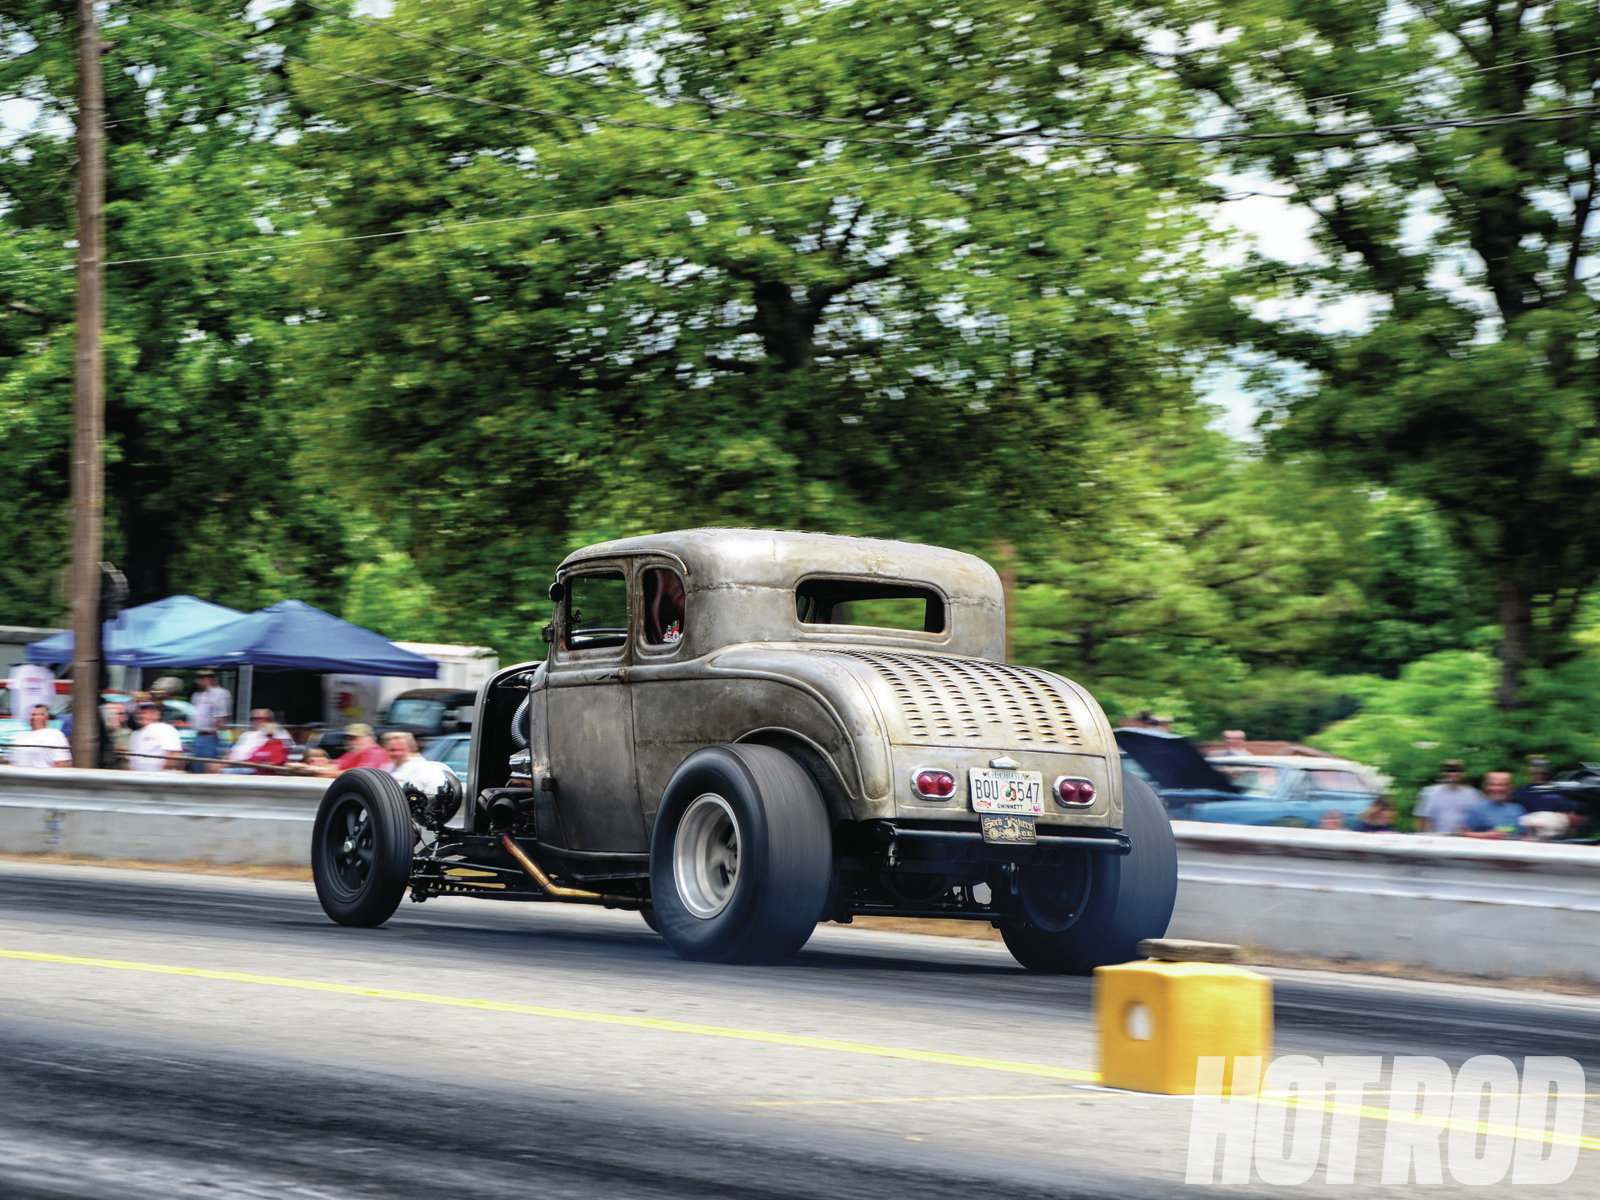 Here's Josh Flammer's Deuce five-window coupe in its natural environment, punishing rubber 10 seconds at a time. It's downright nasty, but in the best way.